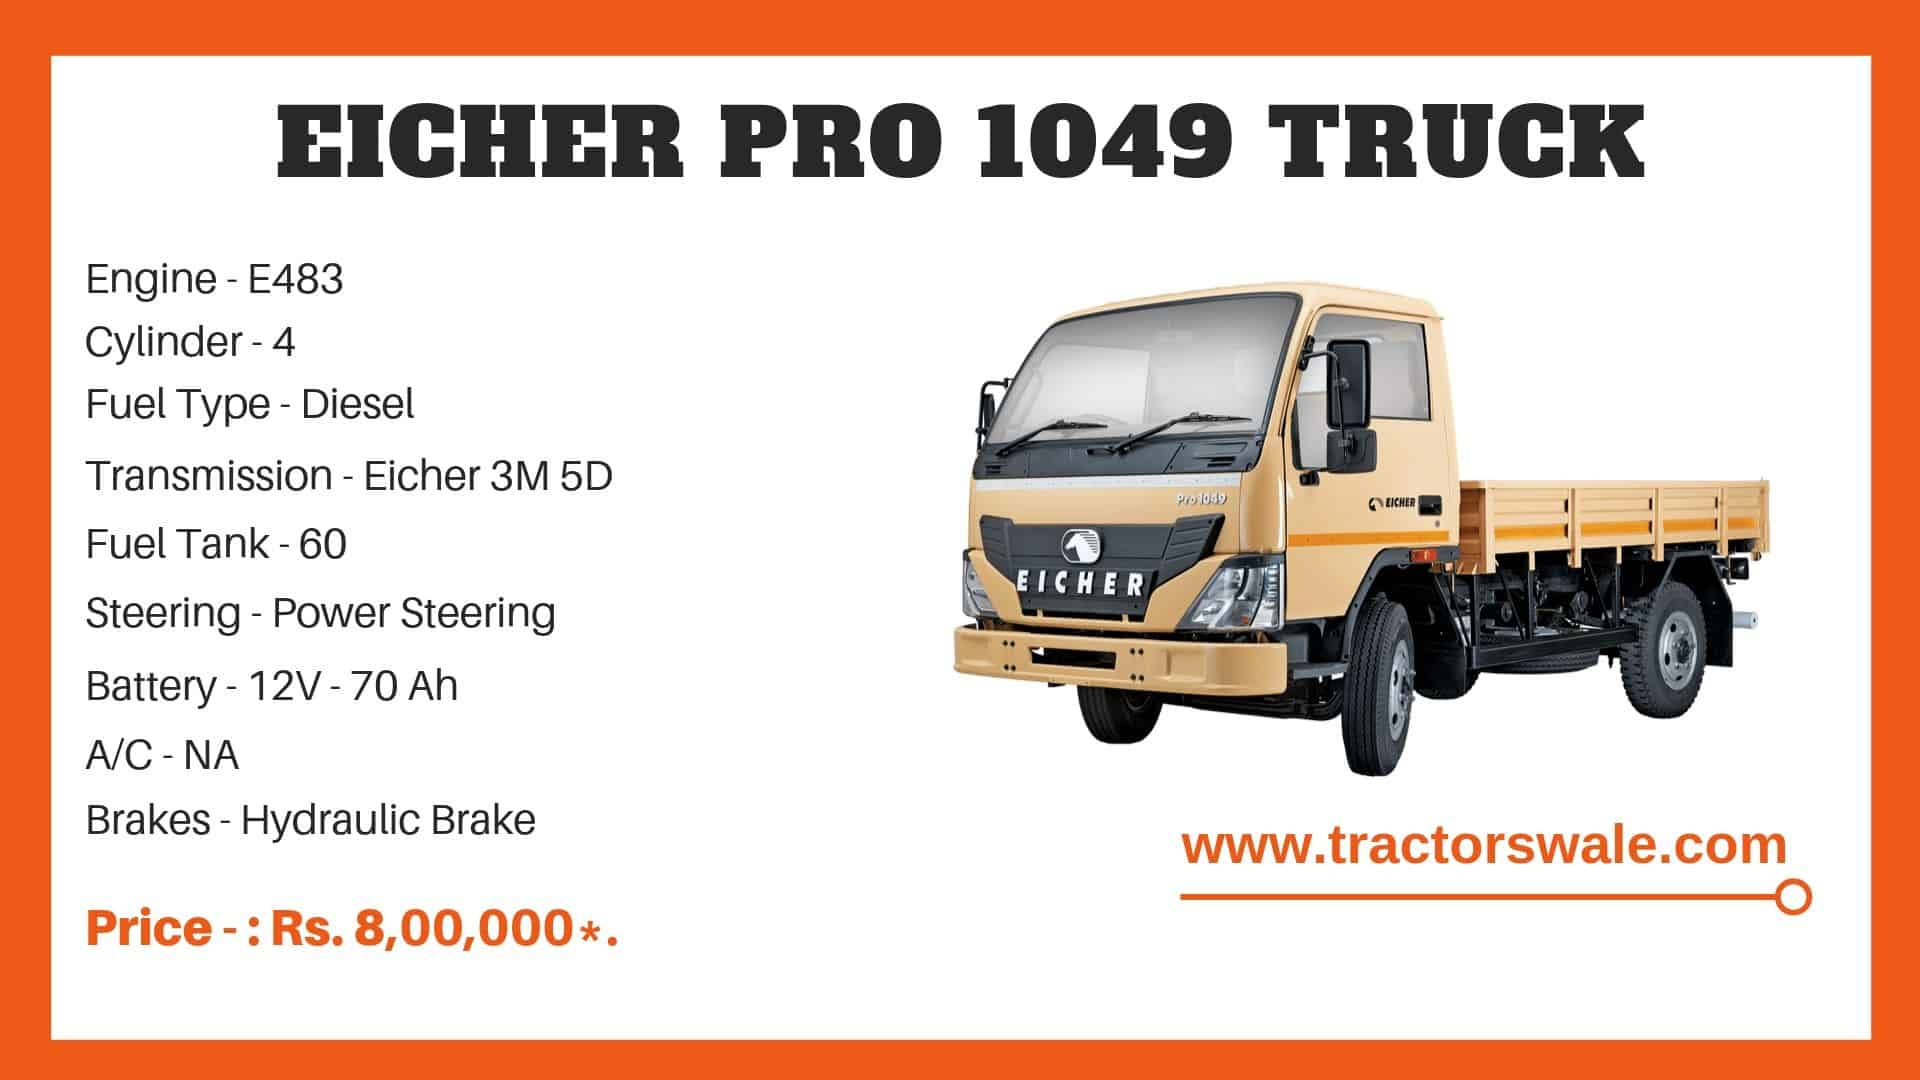 Specification Of Eicher Pro 1049 Truck